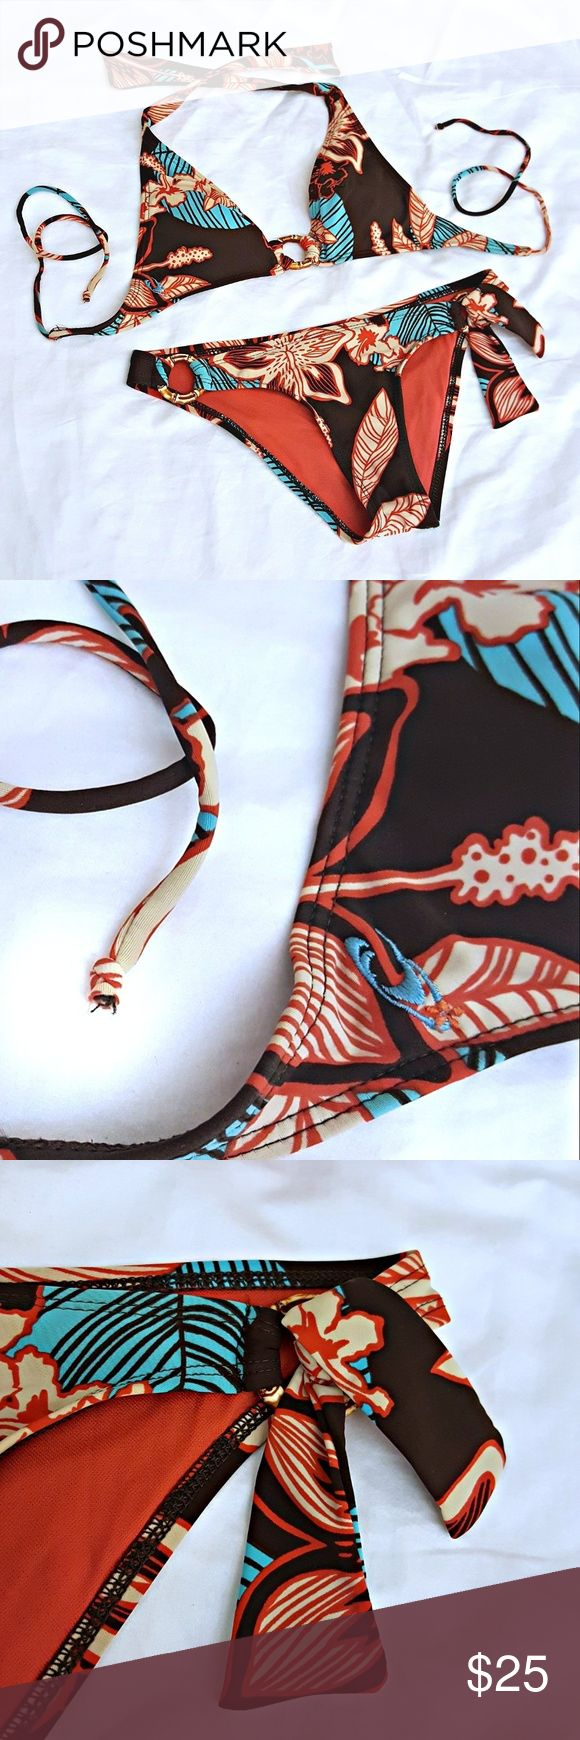 O'neill Bikini Two-Piece Suit O'neill String Bikini Two-Piece Suit. Dark chocolate brown bikini with Hawaiian floral print details in dark coral, aqua & khaki tan. Accented with faux bamboo rings. Aqua embroidered logo on both the top and  bottoms. Size tag was cut out. Very clean. Small hole in interior lining layer does not affect the outside of the suit. Otherwise EUC! O'Neill Swim Bikinis